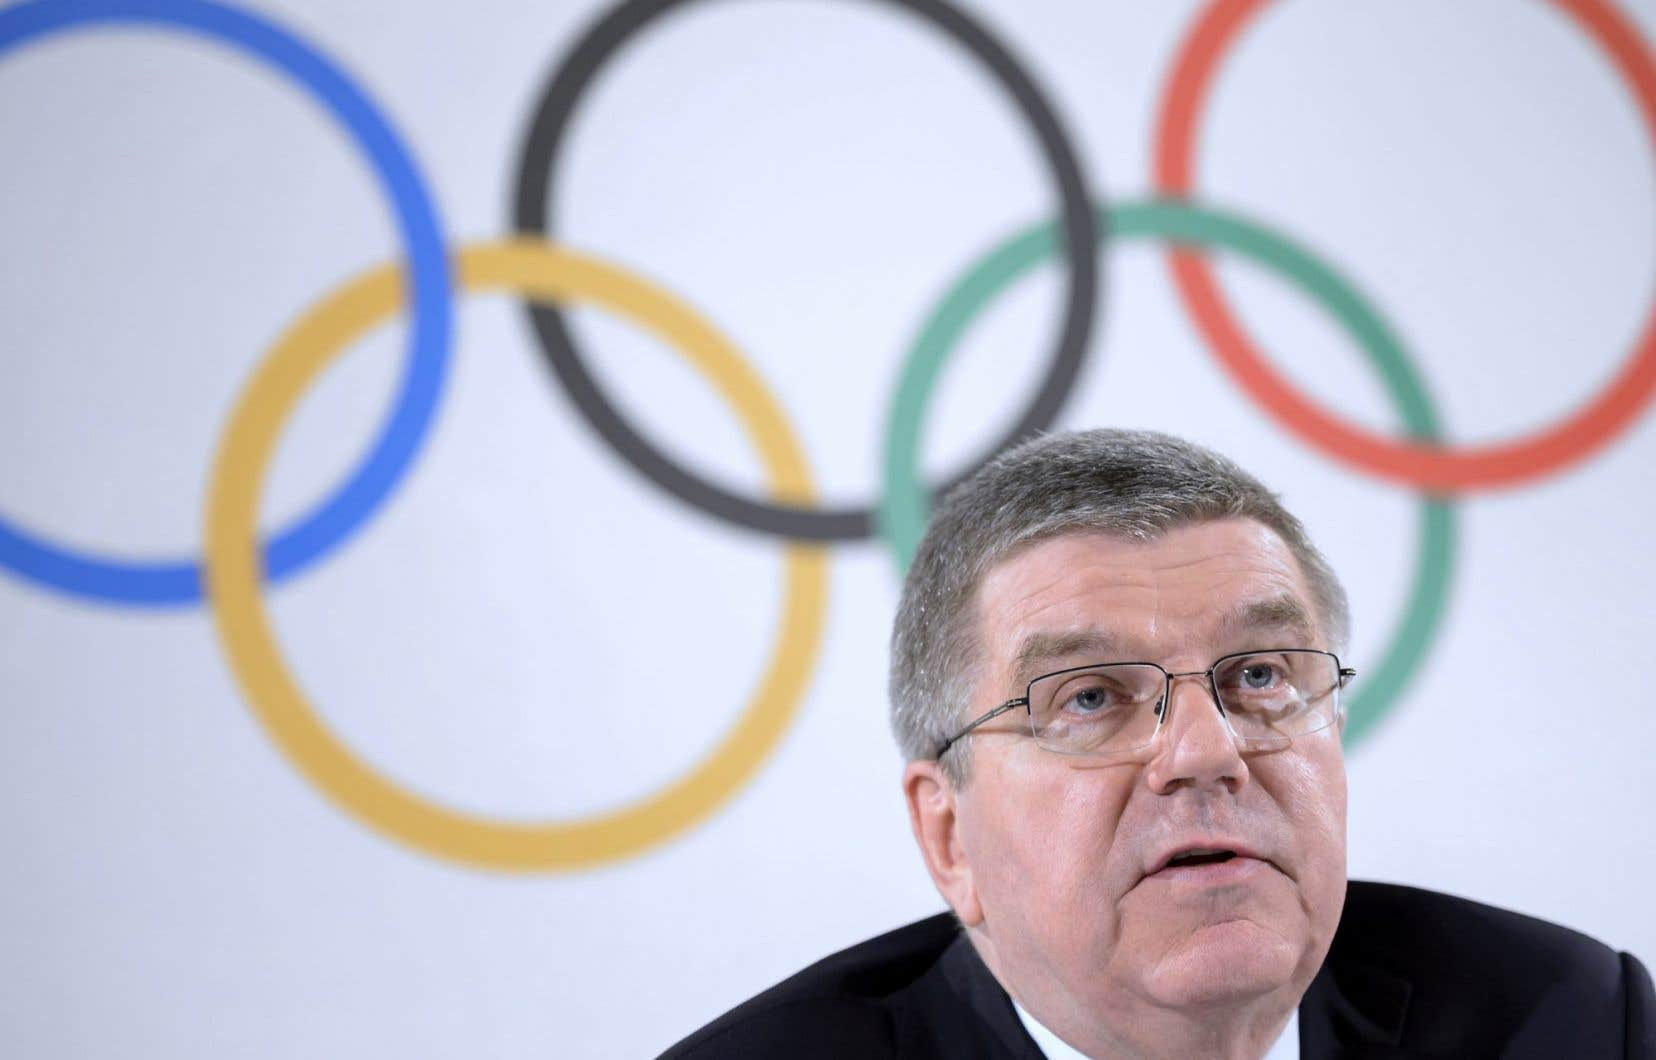 Le président du Comité international olympique, Thomas Bach